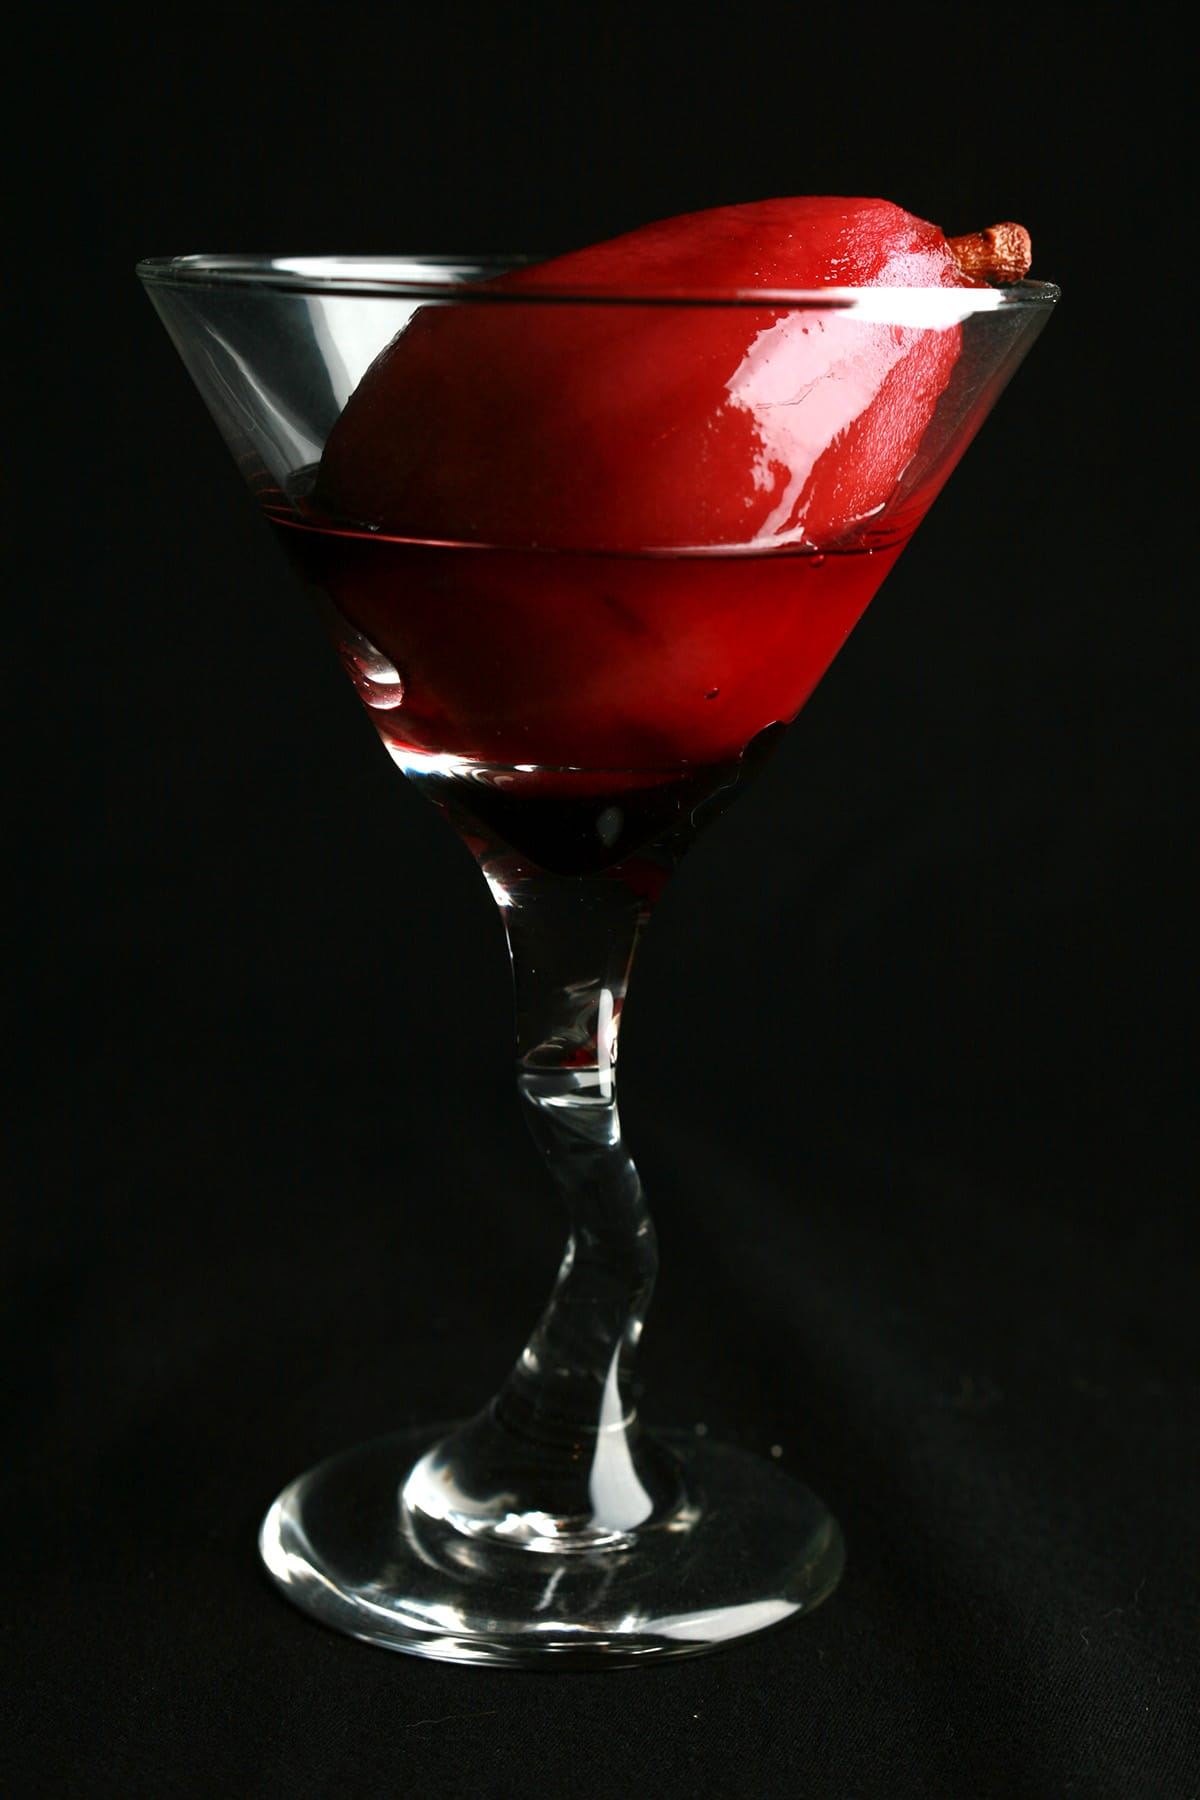 A single wine poached pear in a Martini glass.